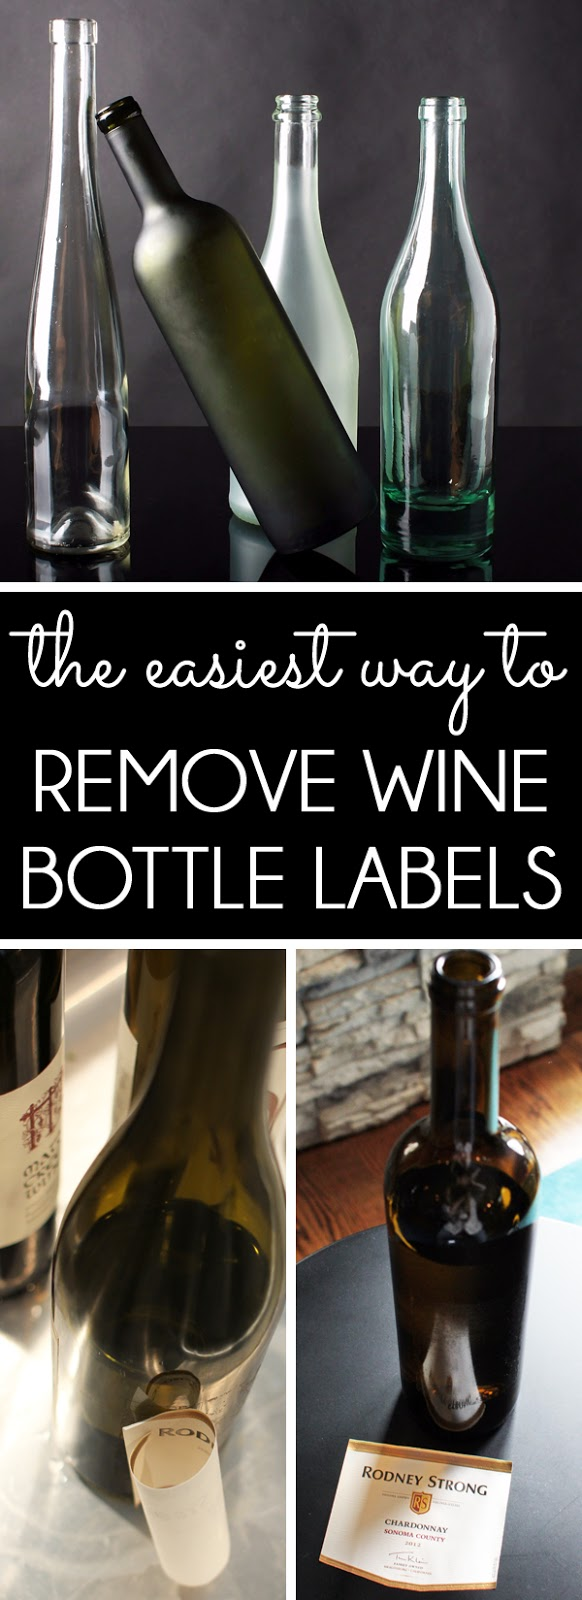 How to Remove Wine Bottle Labels